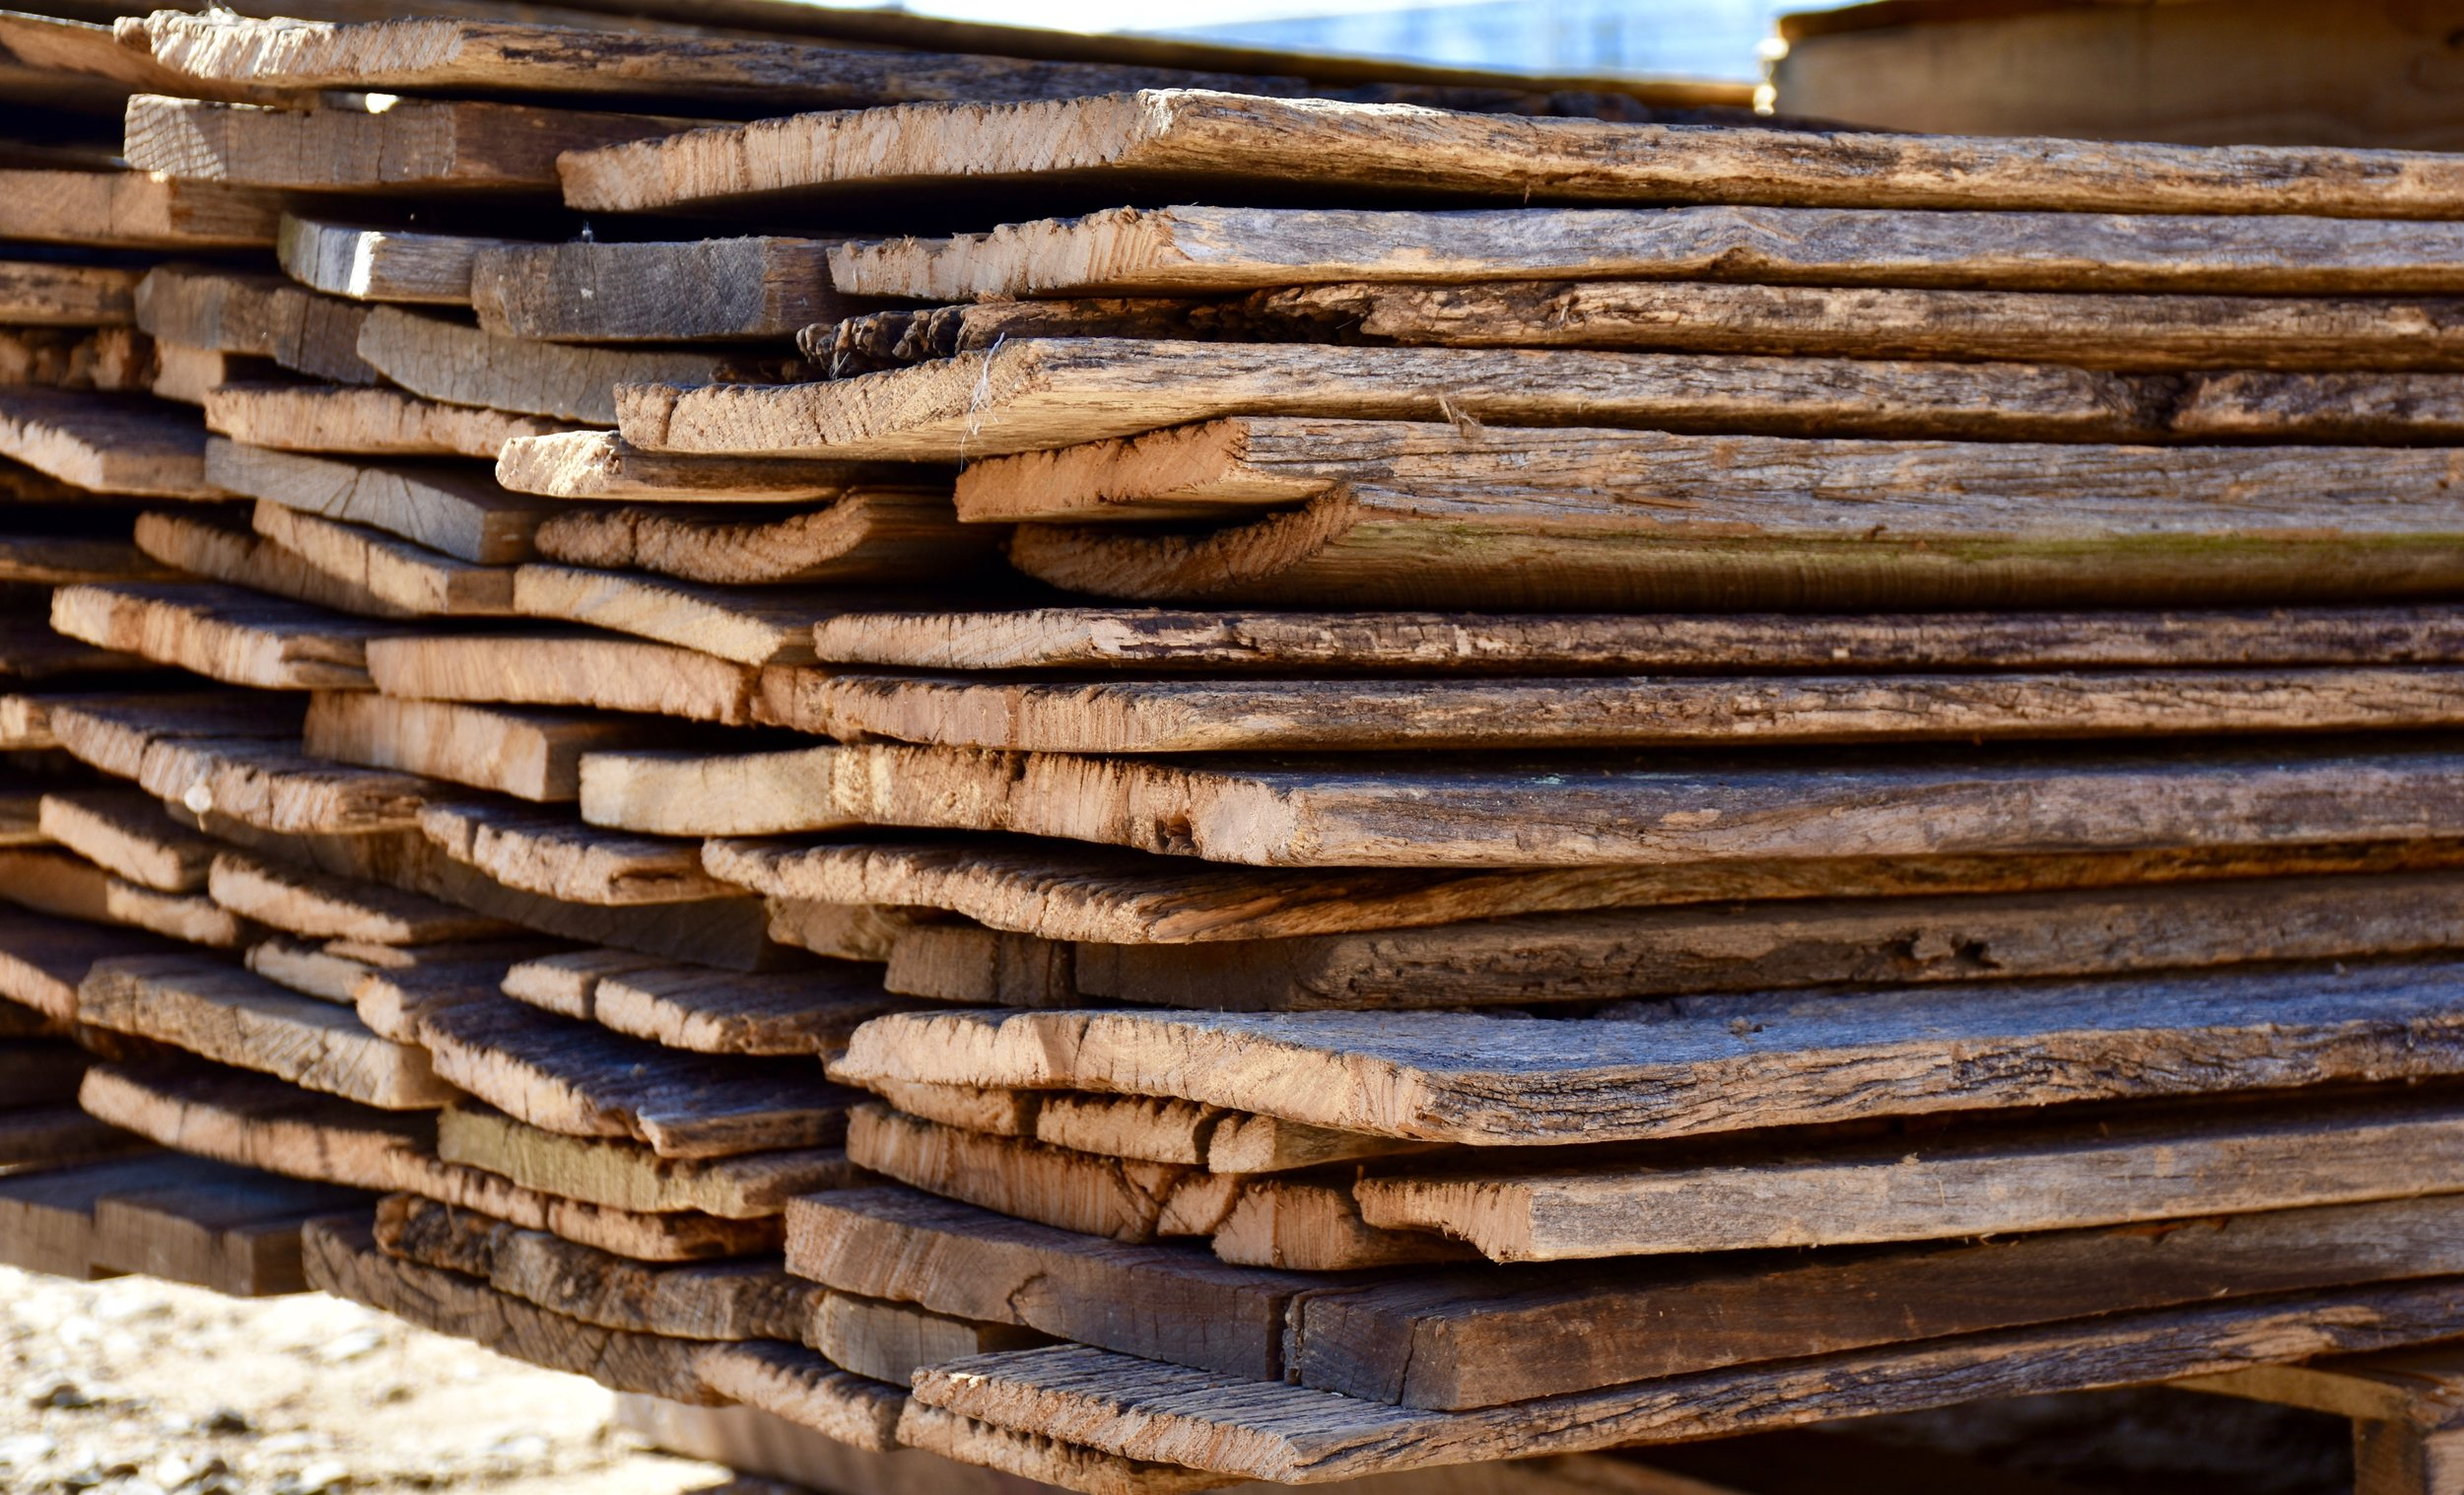 Stacks and stacks of authentic used brown barn siding